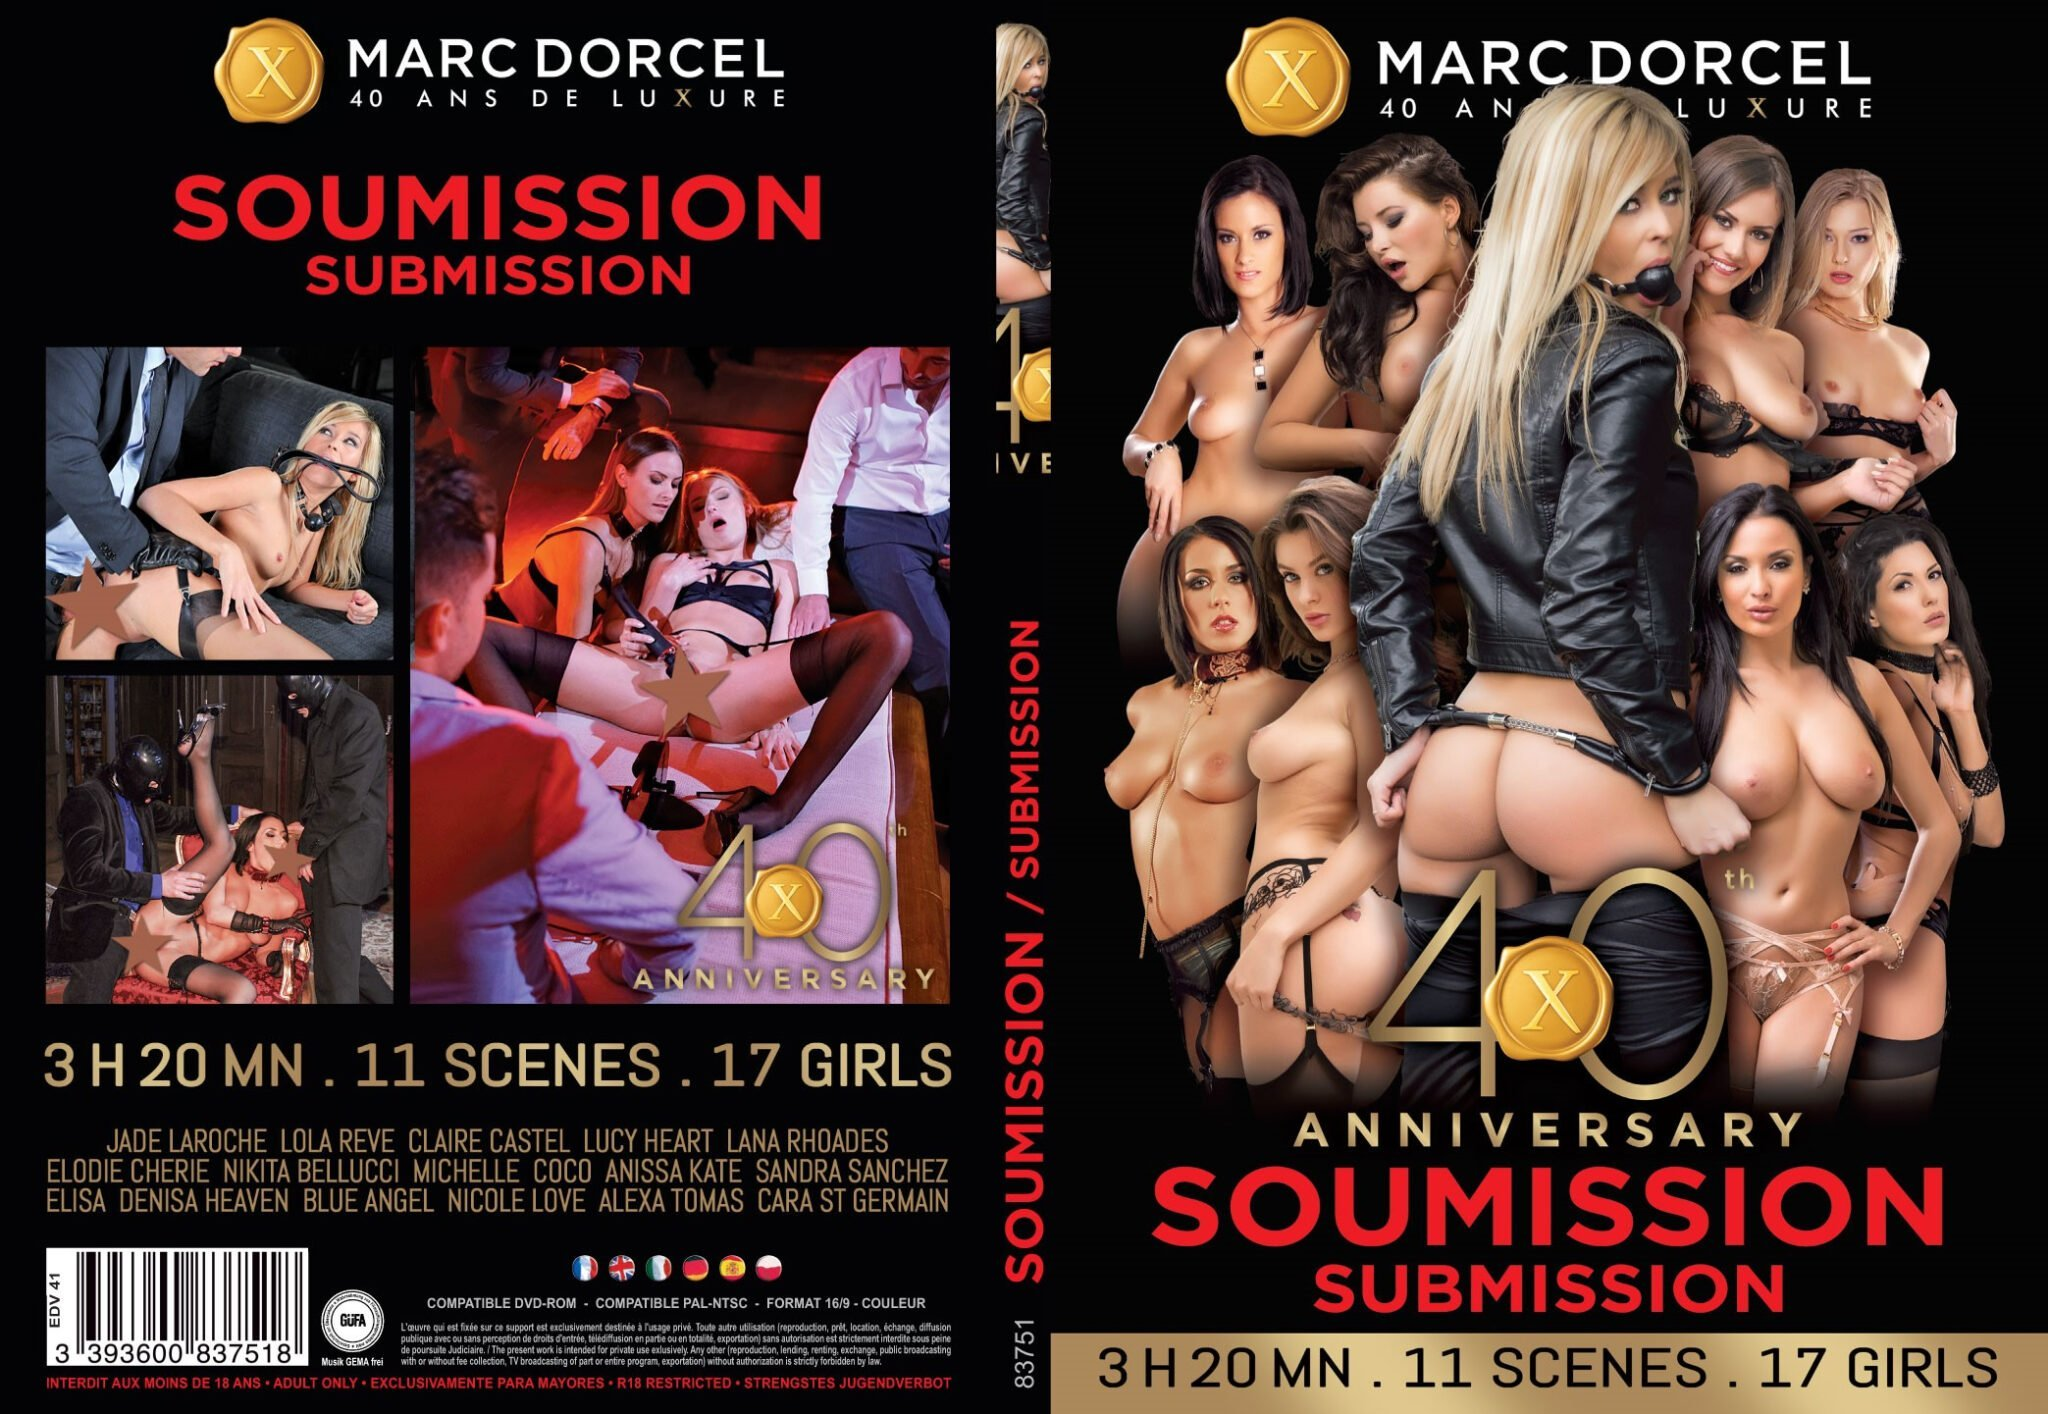 Dorcel - 40th Anniversary - Submission (2019)